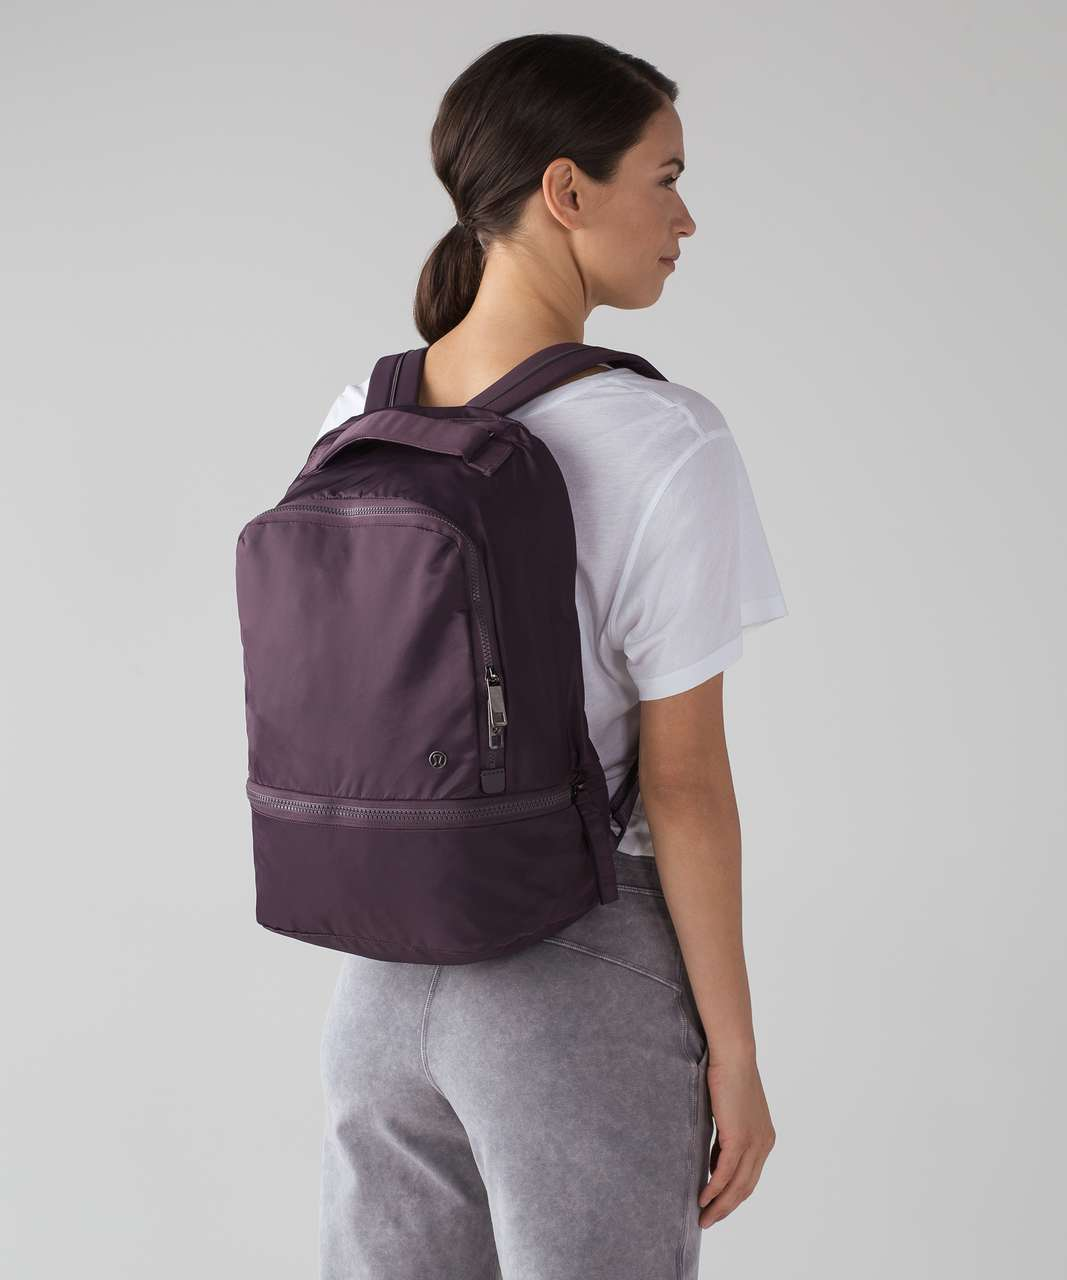 Lululemon City Adventurer Backpack 17L - Black Currant